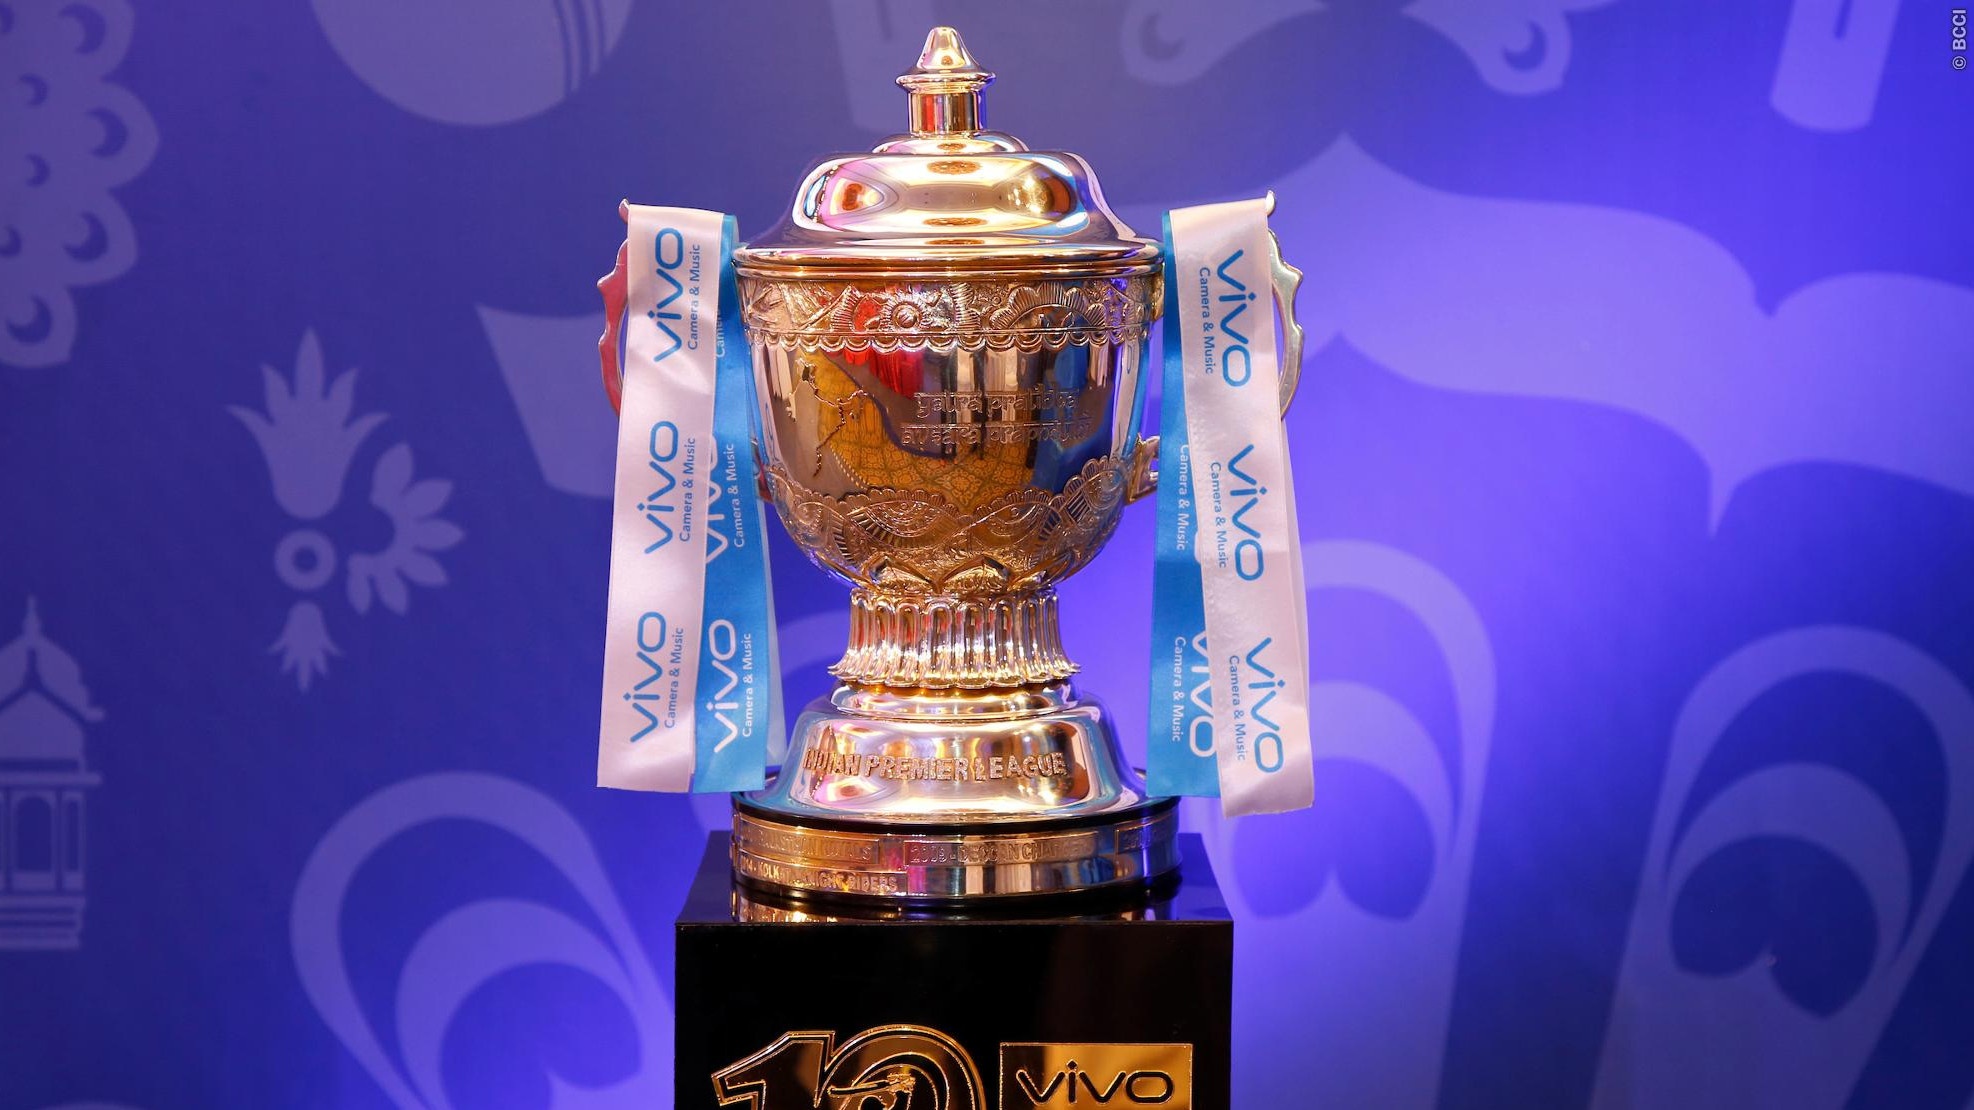 IPL 2019: A summary of all the retentions and releases by IPL Franchises